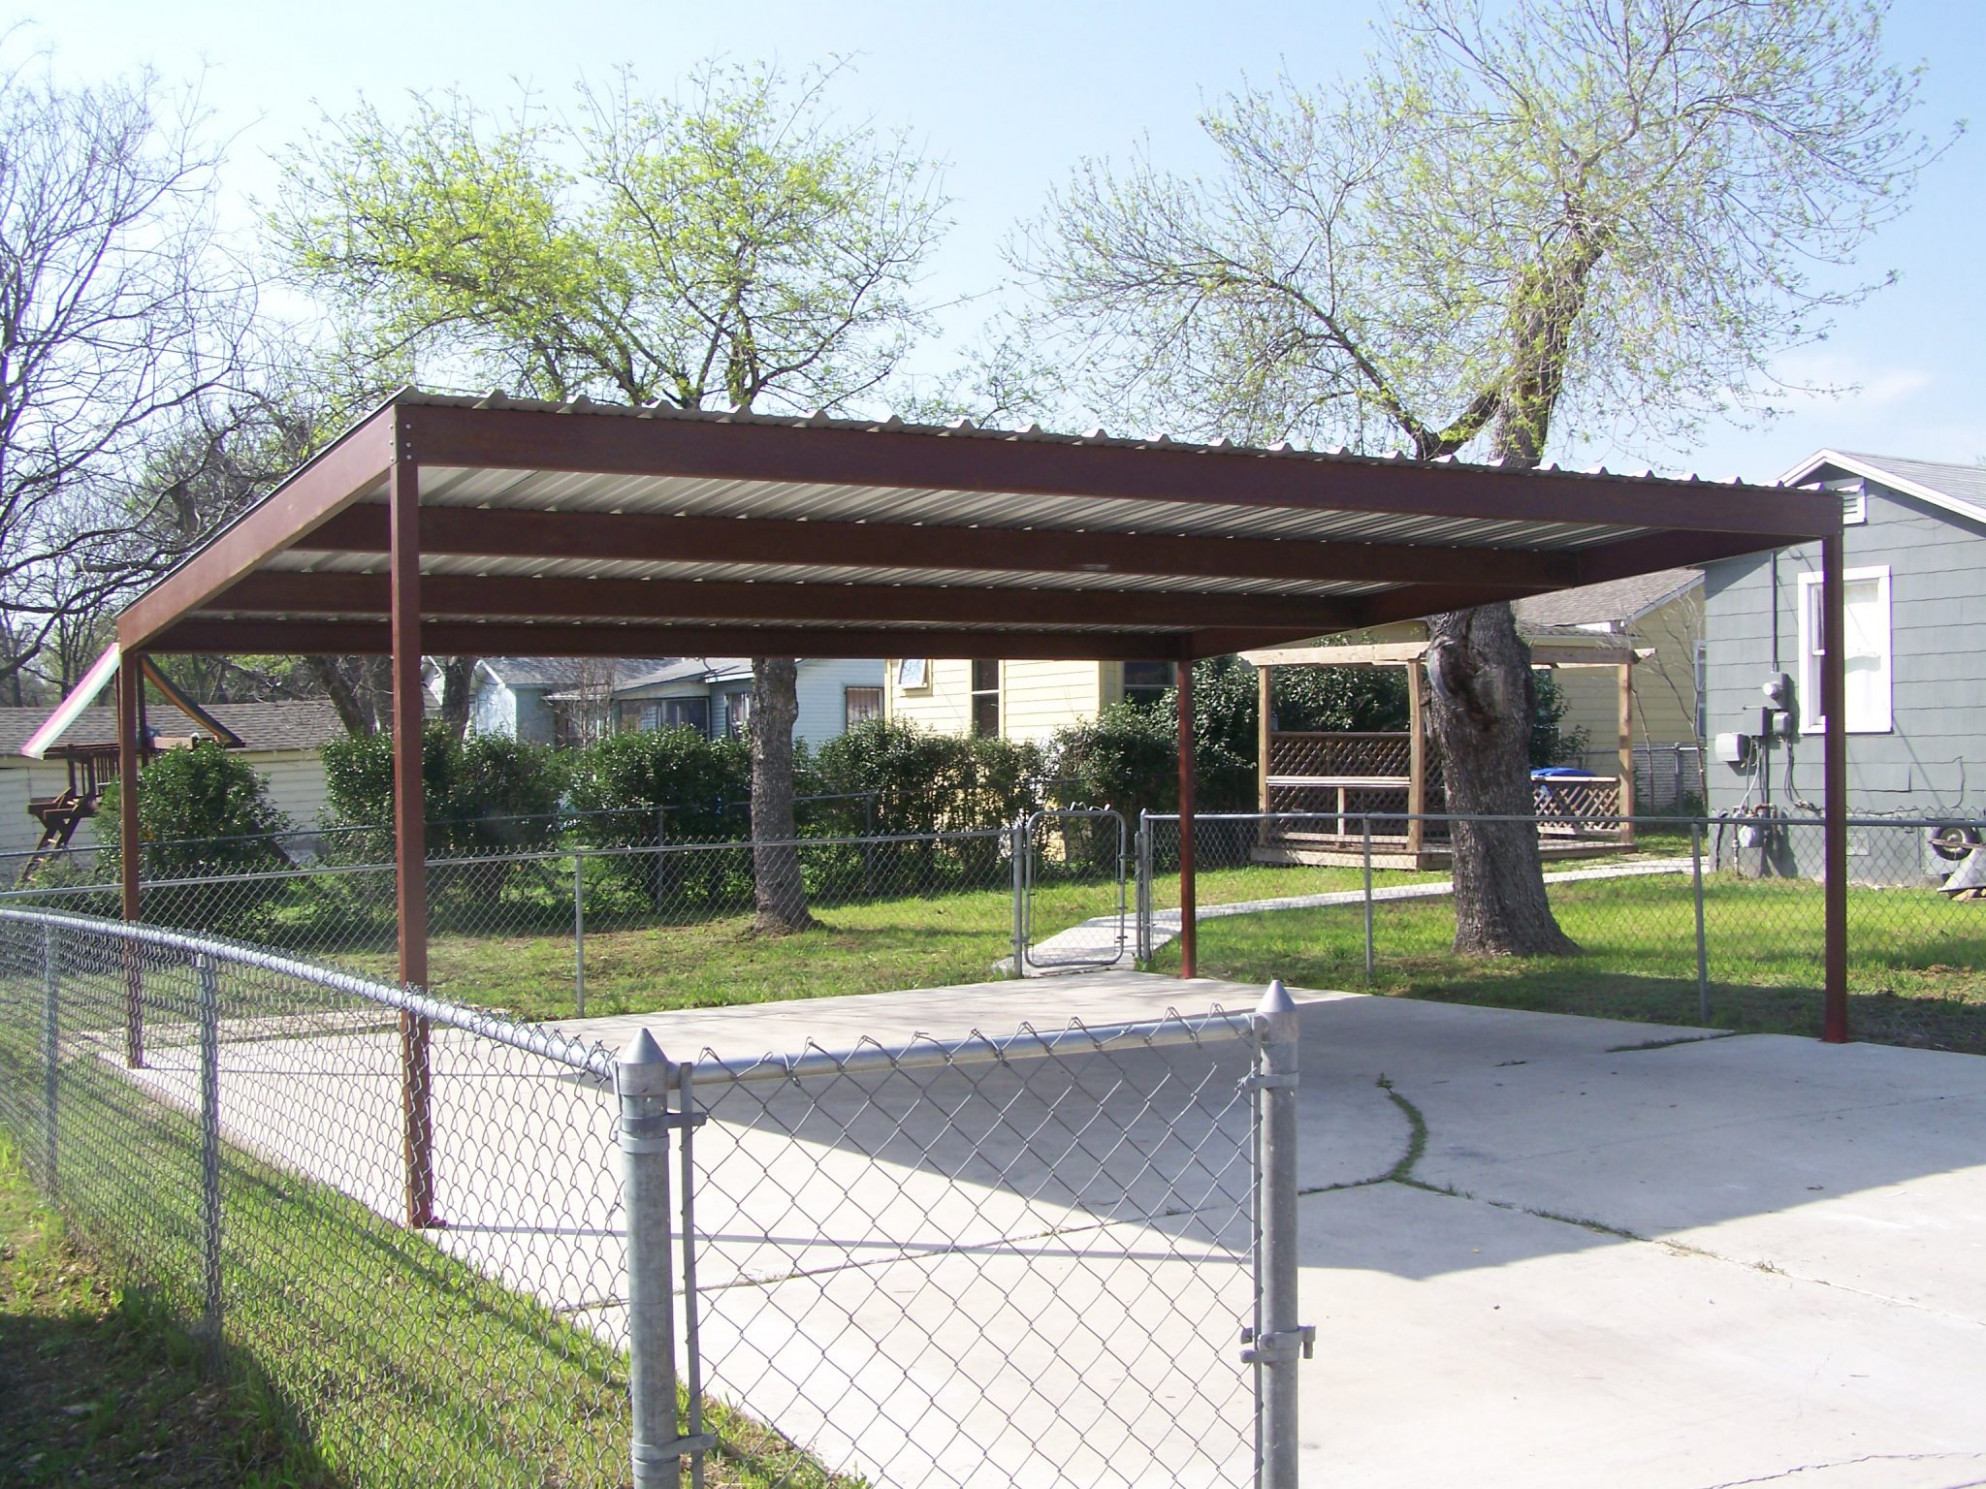 Metal Carport Kits Do Yourself Allstateloghomes Com Flat Top Carport Roof.jpg